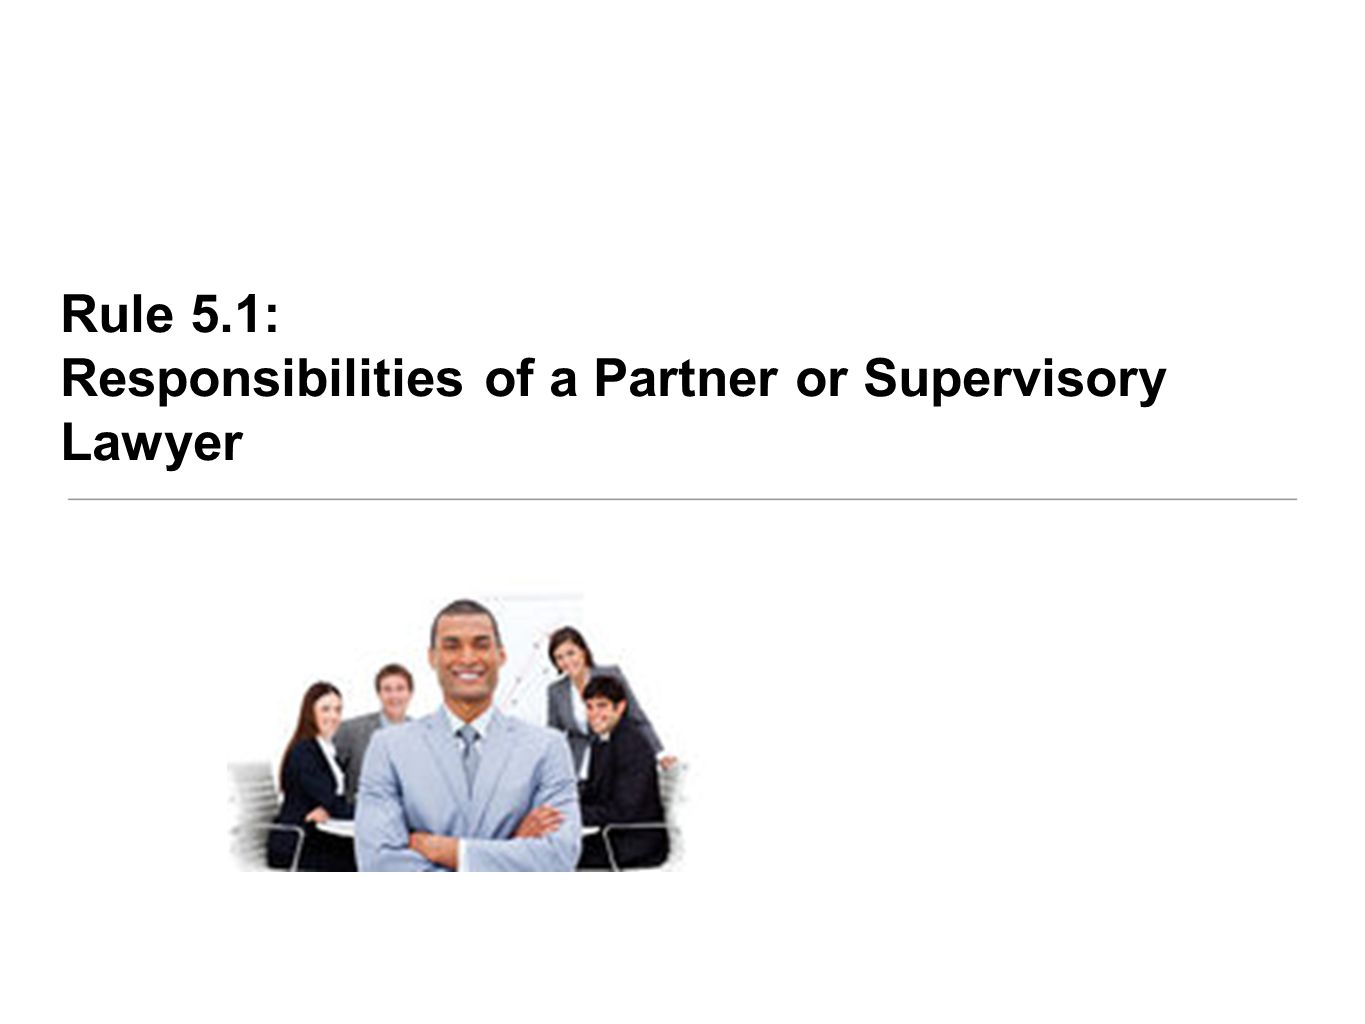 Rule 5.1: Responsibilities of a Partner or Supervisory Lawyer